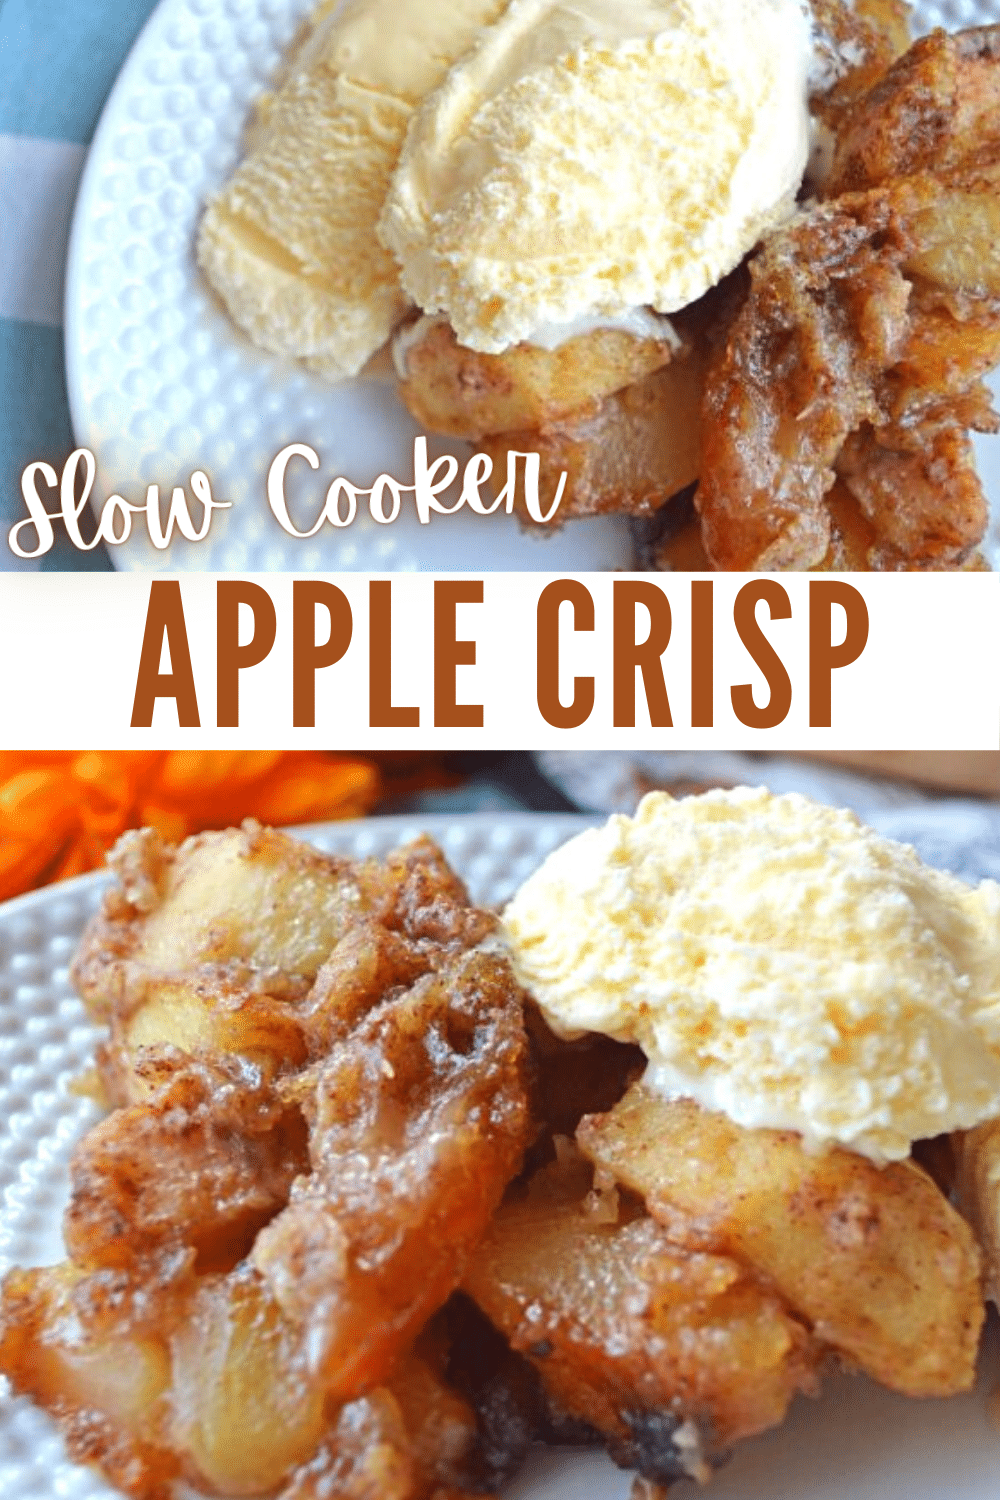 Slow Cooker Apple Crisp is a must-make dessert for fall. This simple crock pot dessert recipe will fill your home with the smells of cinnamon apples! #apples #5ingredients #slowcooker via @wondermomwannab